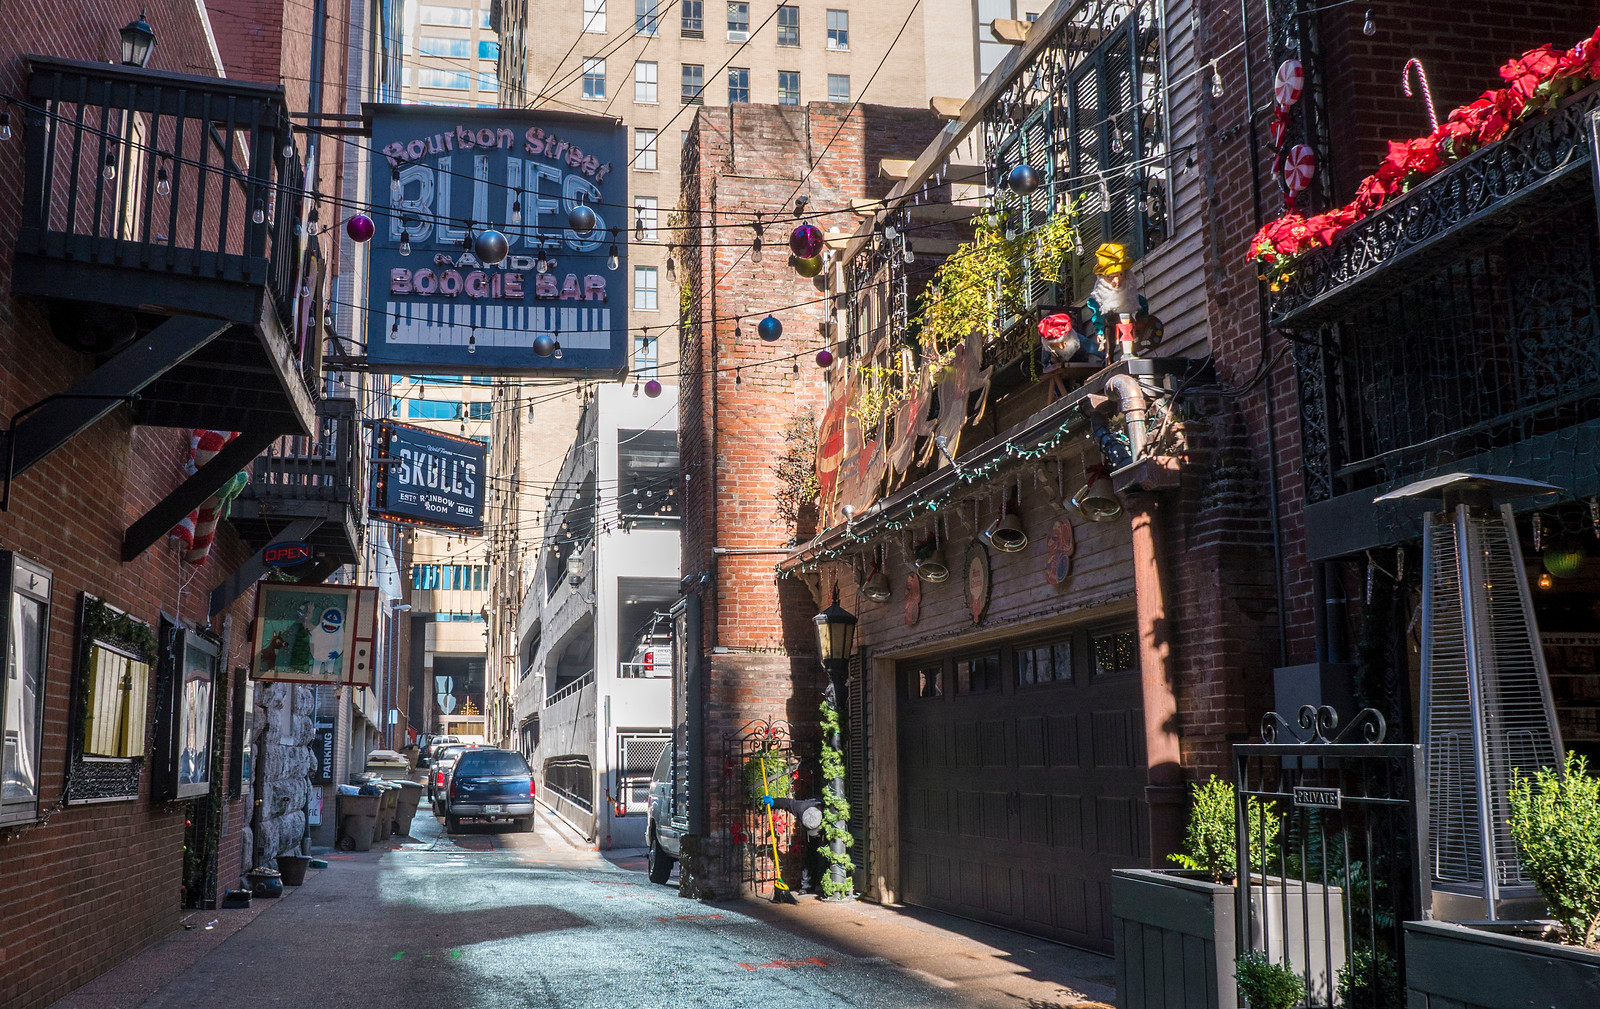 Things to Do in Downtown Nashville: Best Attractions - Printer's Alley